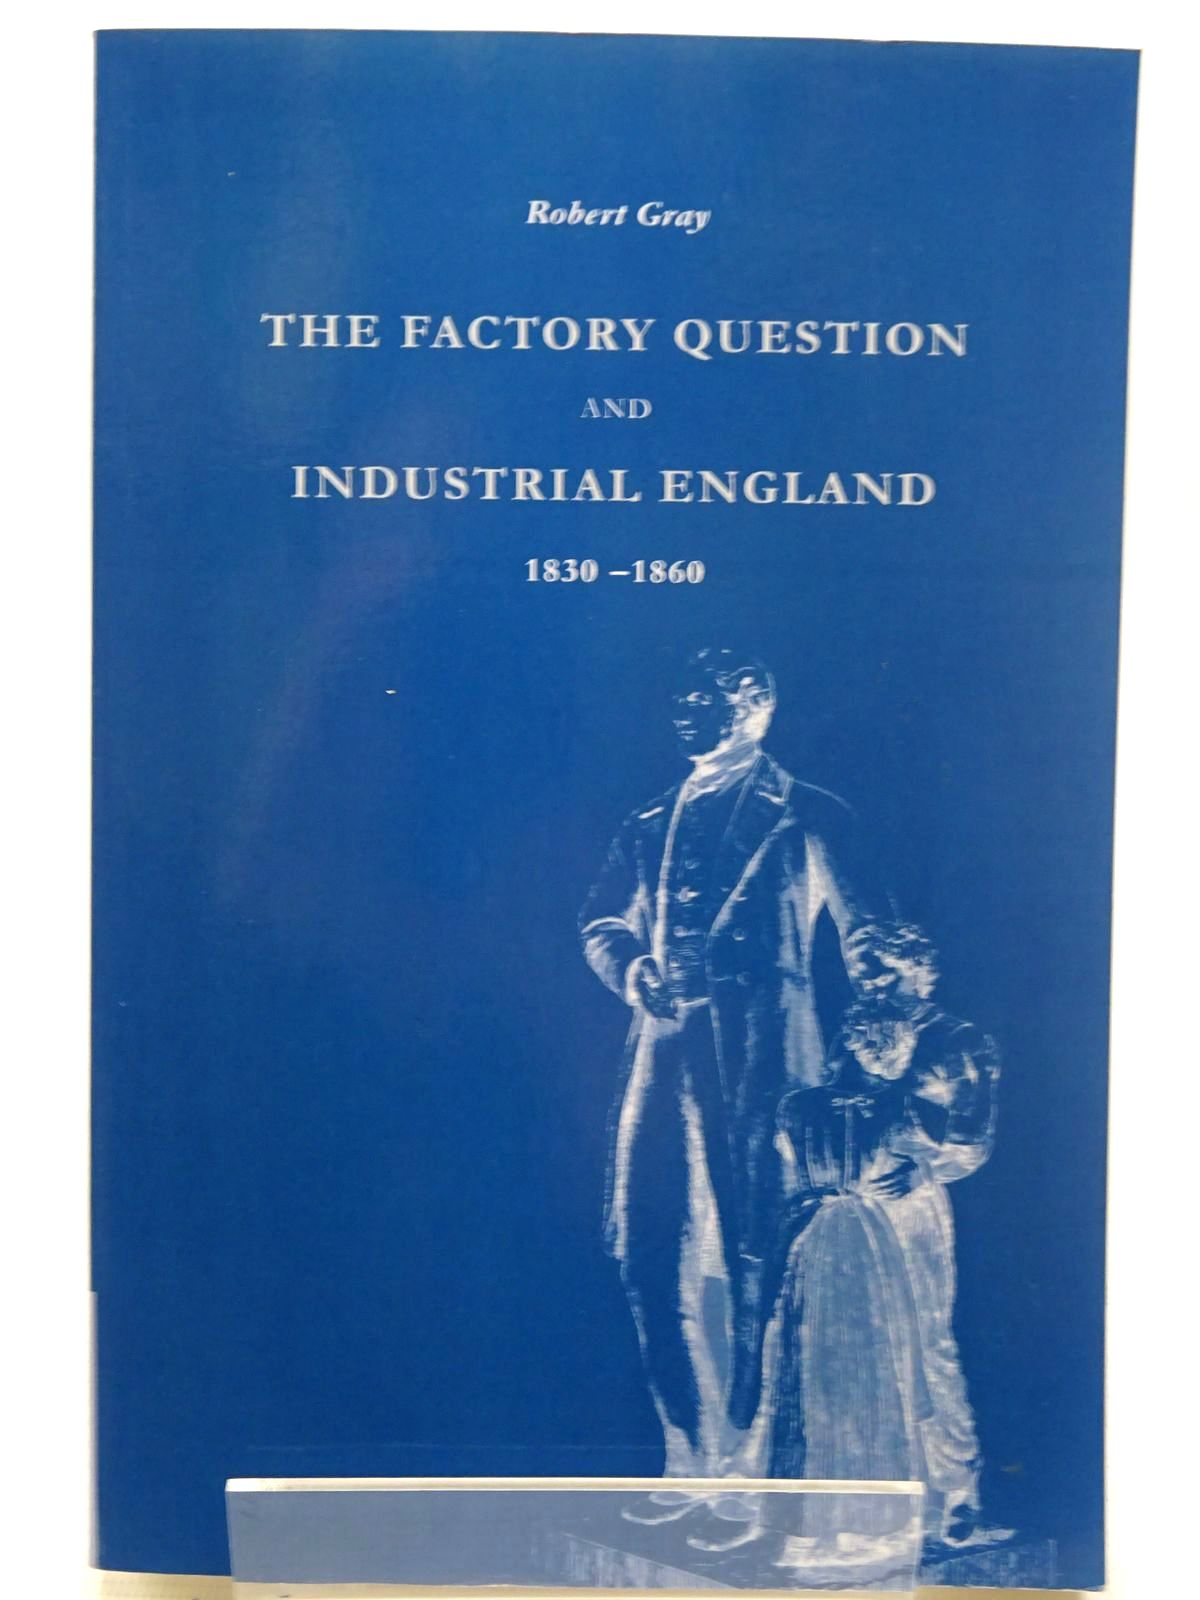 Photo of THE FACTORY QUESTION AND INDUSTRIAL ENGLAND 1830-1860 written by Gray, Robert published by Cambridge University Press (STOCK CODE: 2126467)  for sale by Stella & Rose's Books